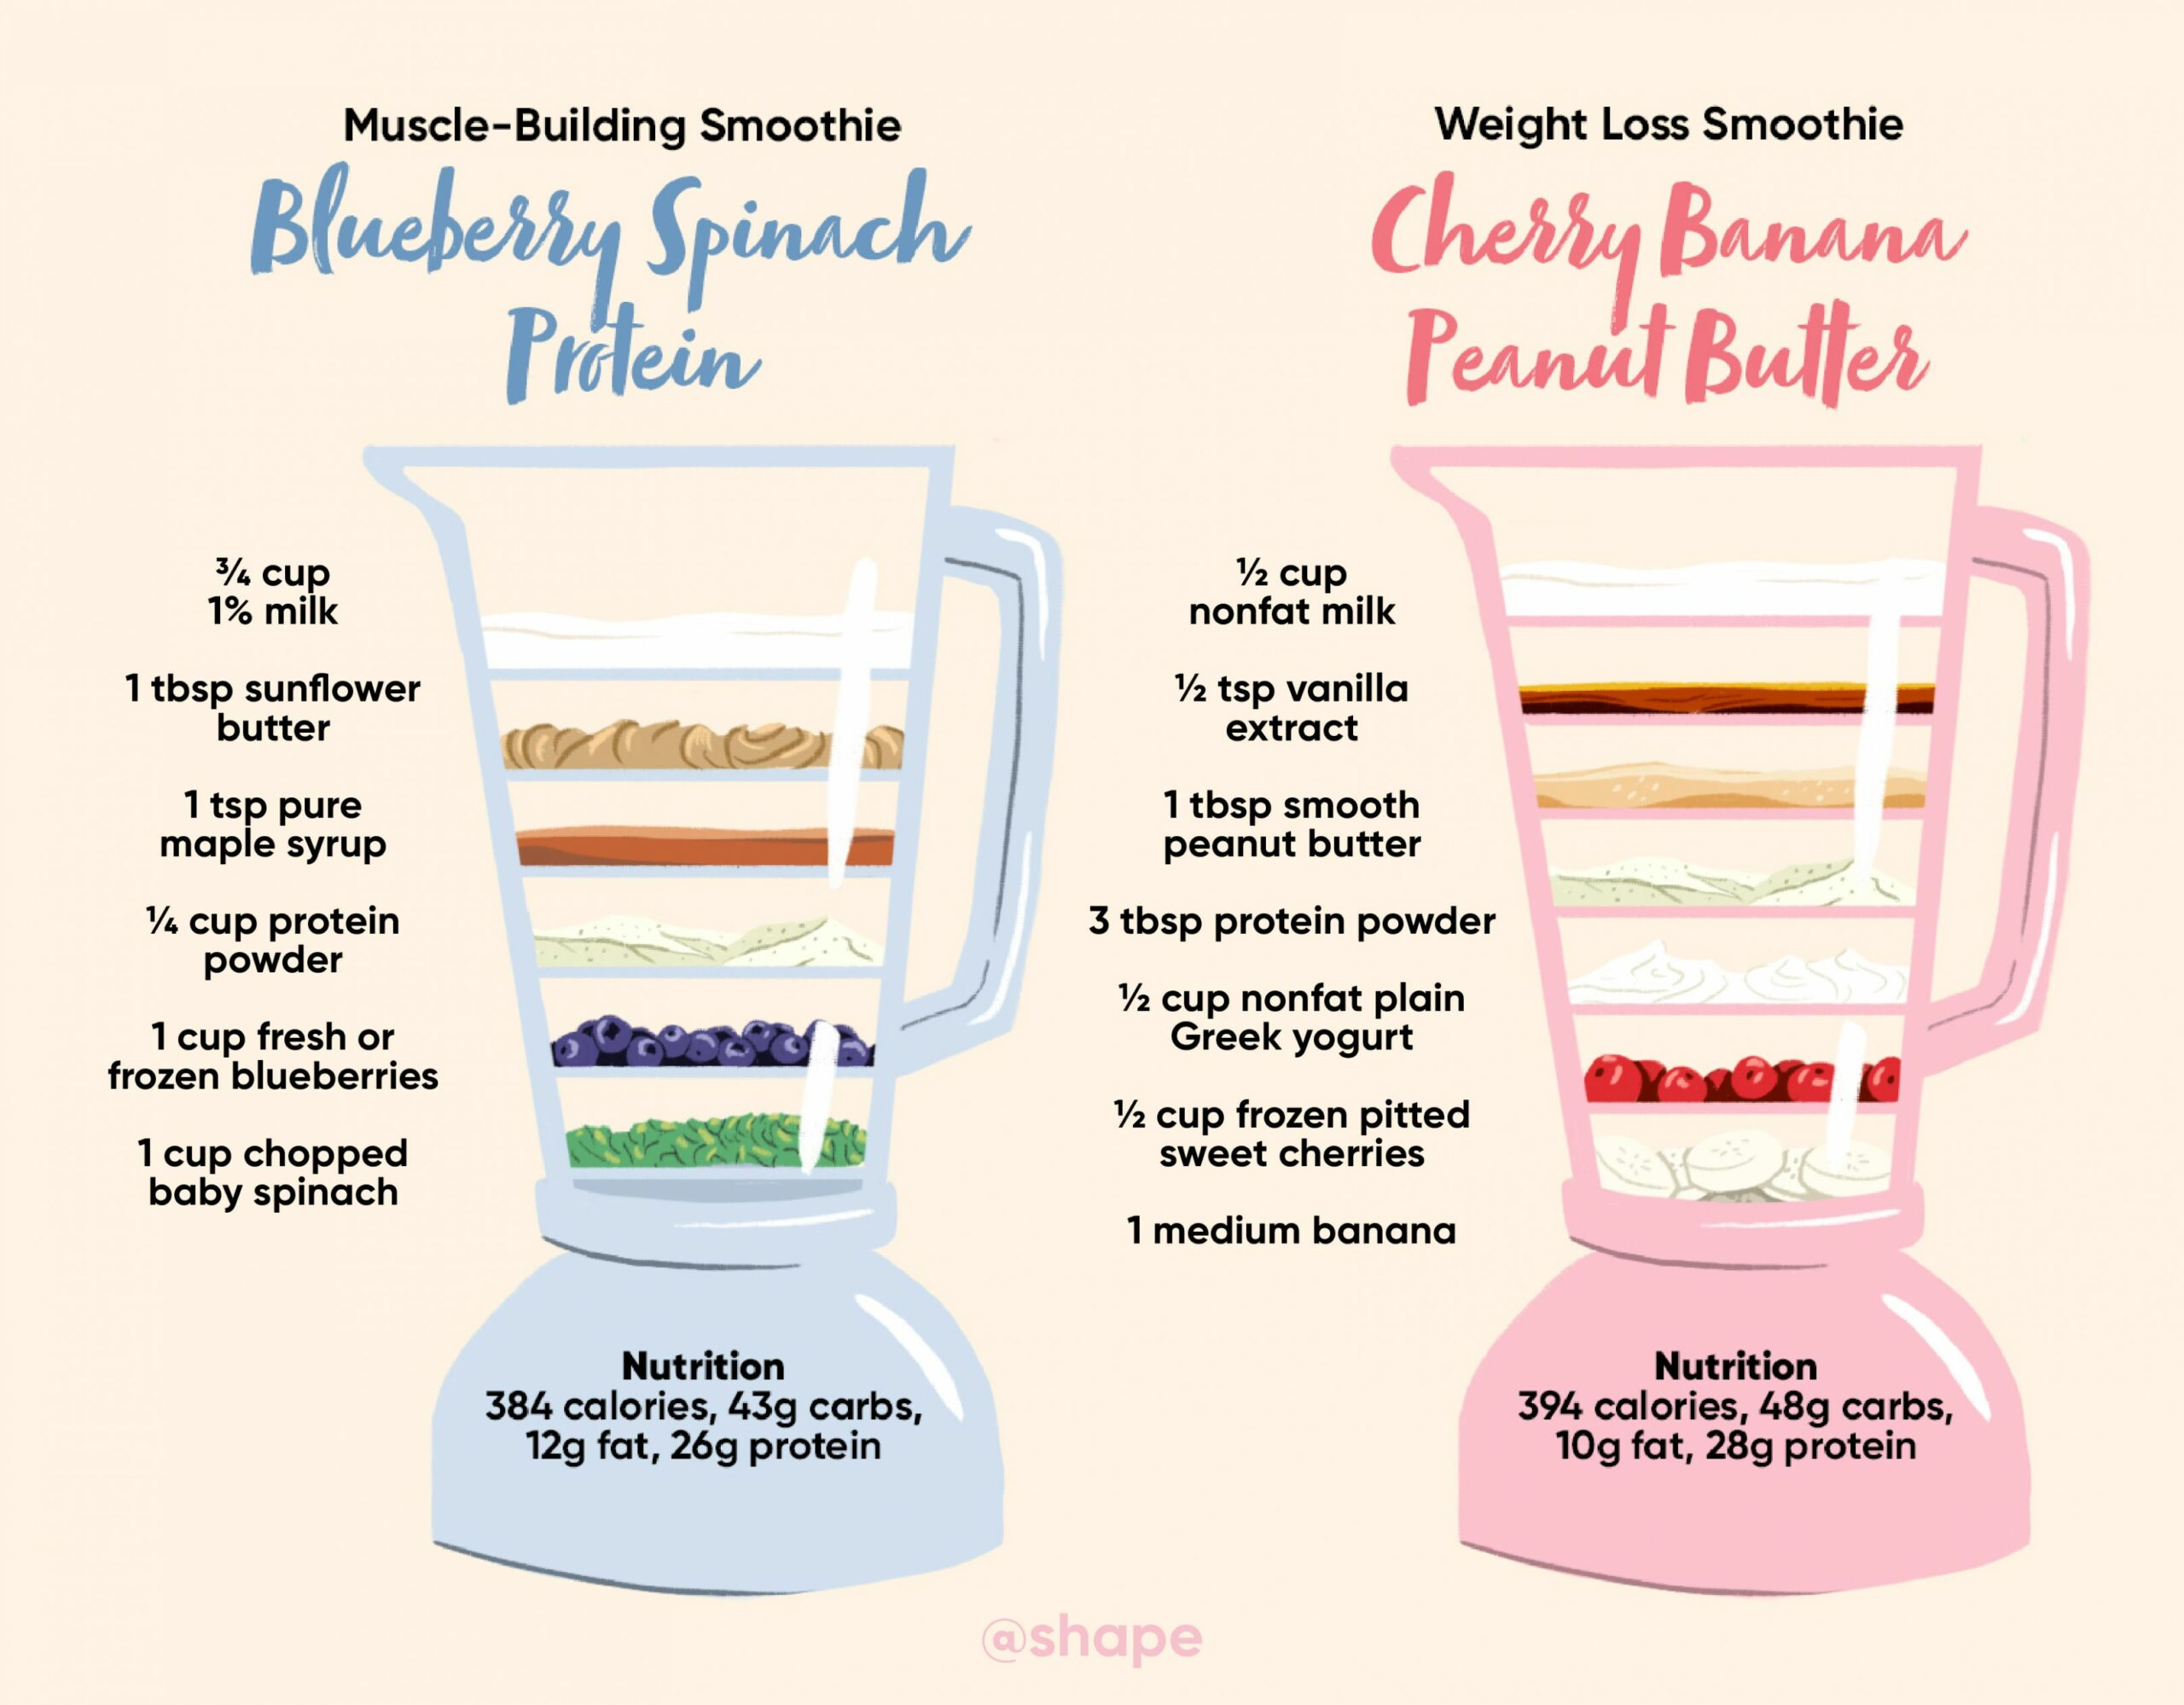 The Difference Between a Muscle-Building Smoothie and Weight Loss ..